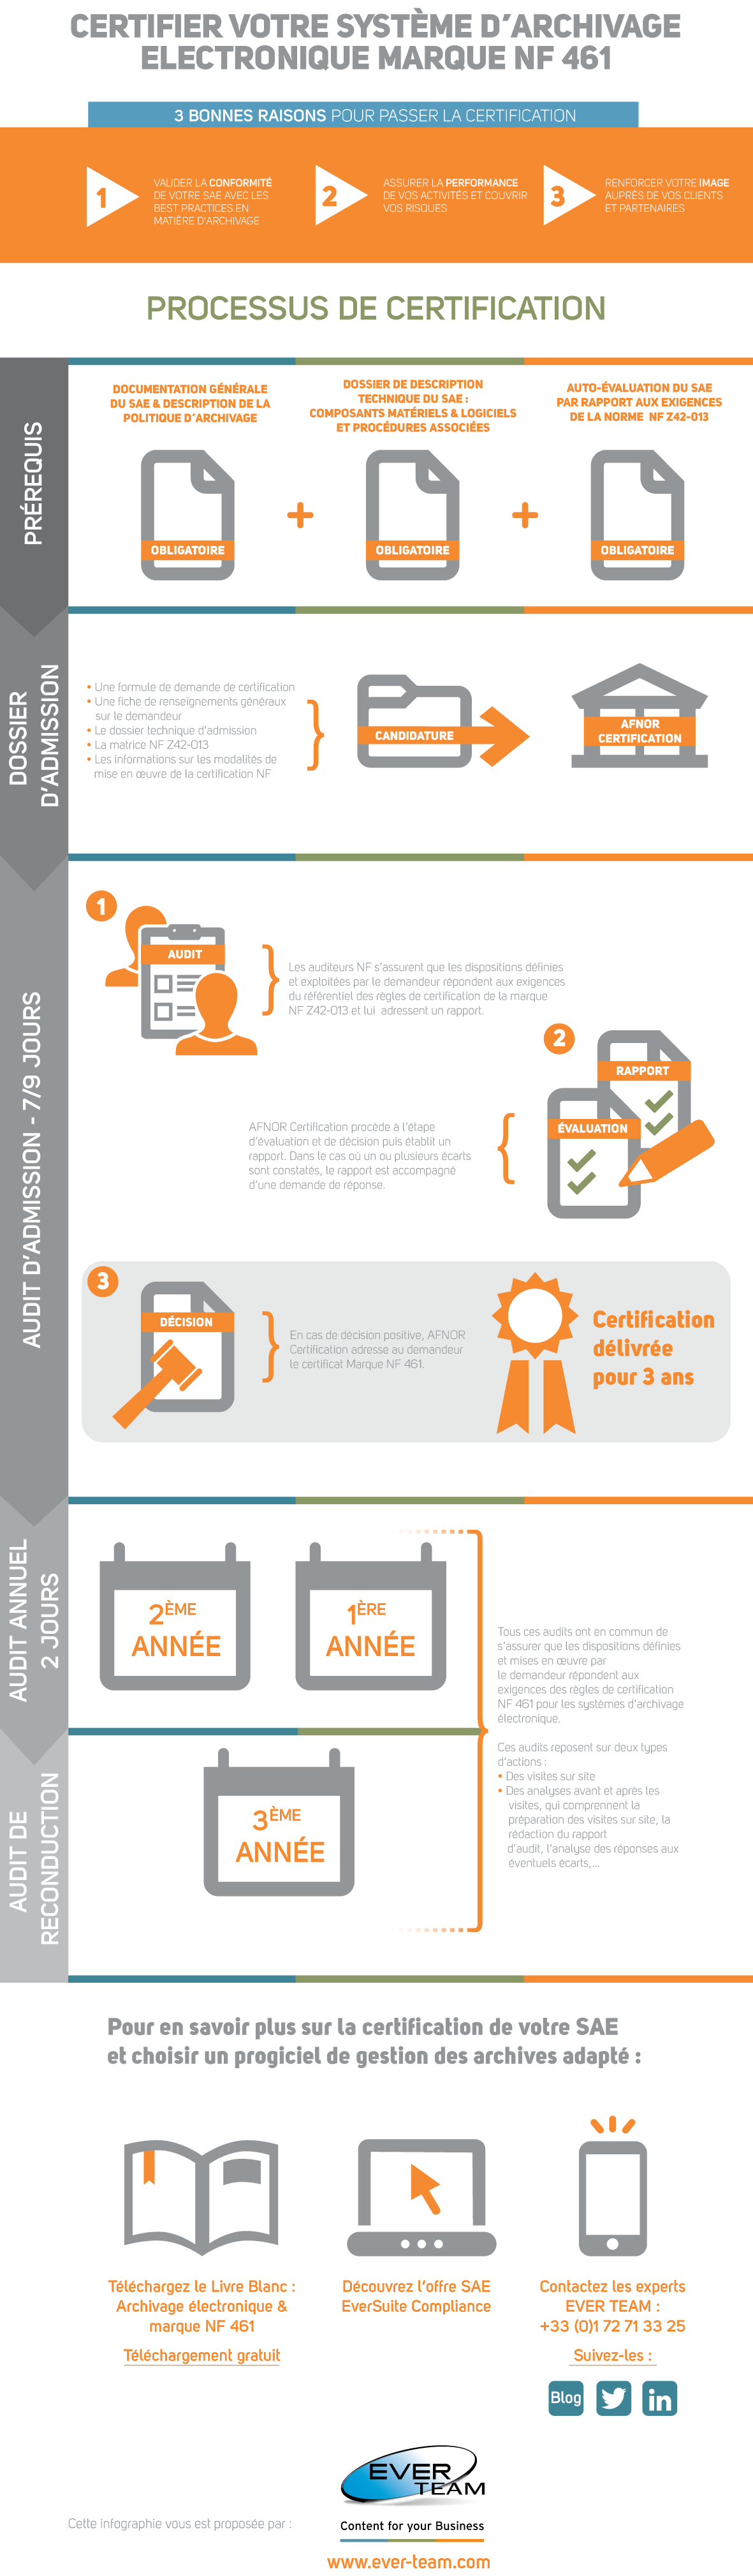 infographie_EVERTEAM_certification_SAE_NF461